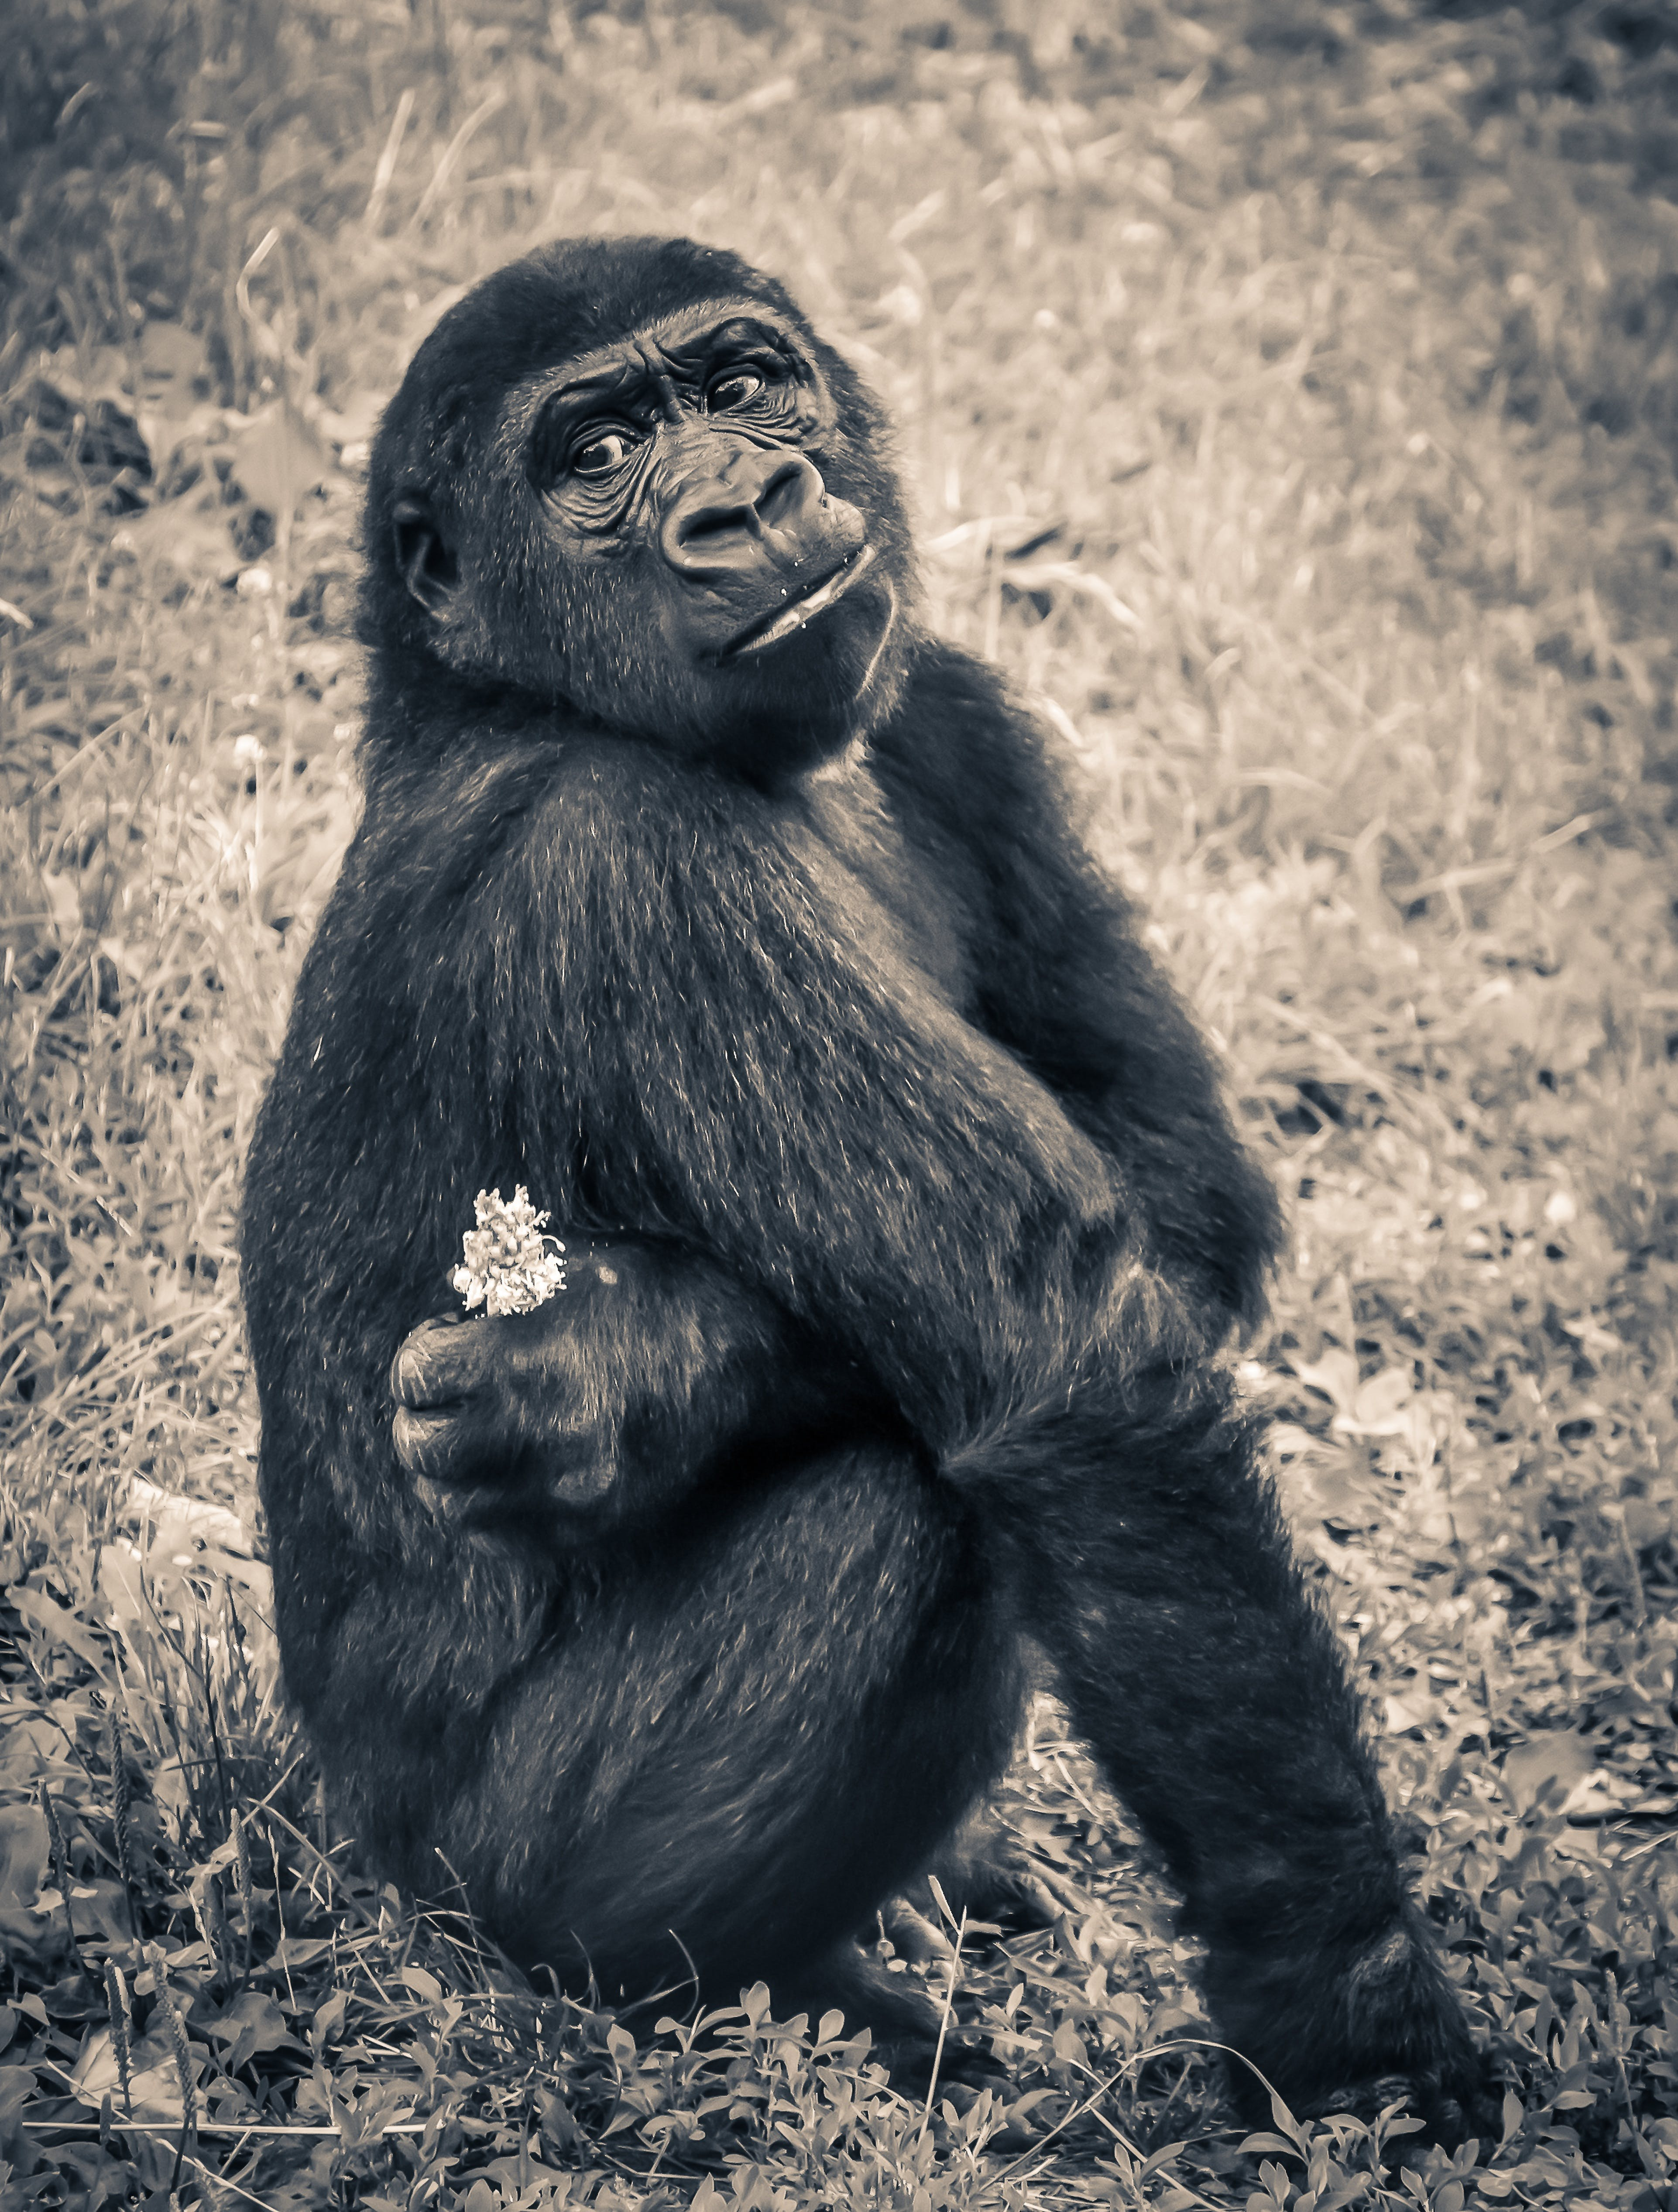 Monkey Holding White Petal Flower Sitting on Grassy Field in Sepia Tone Photography